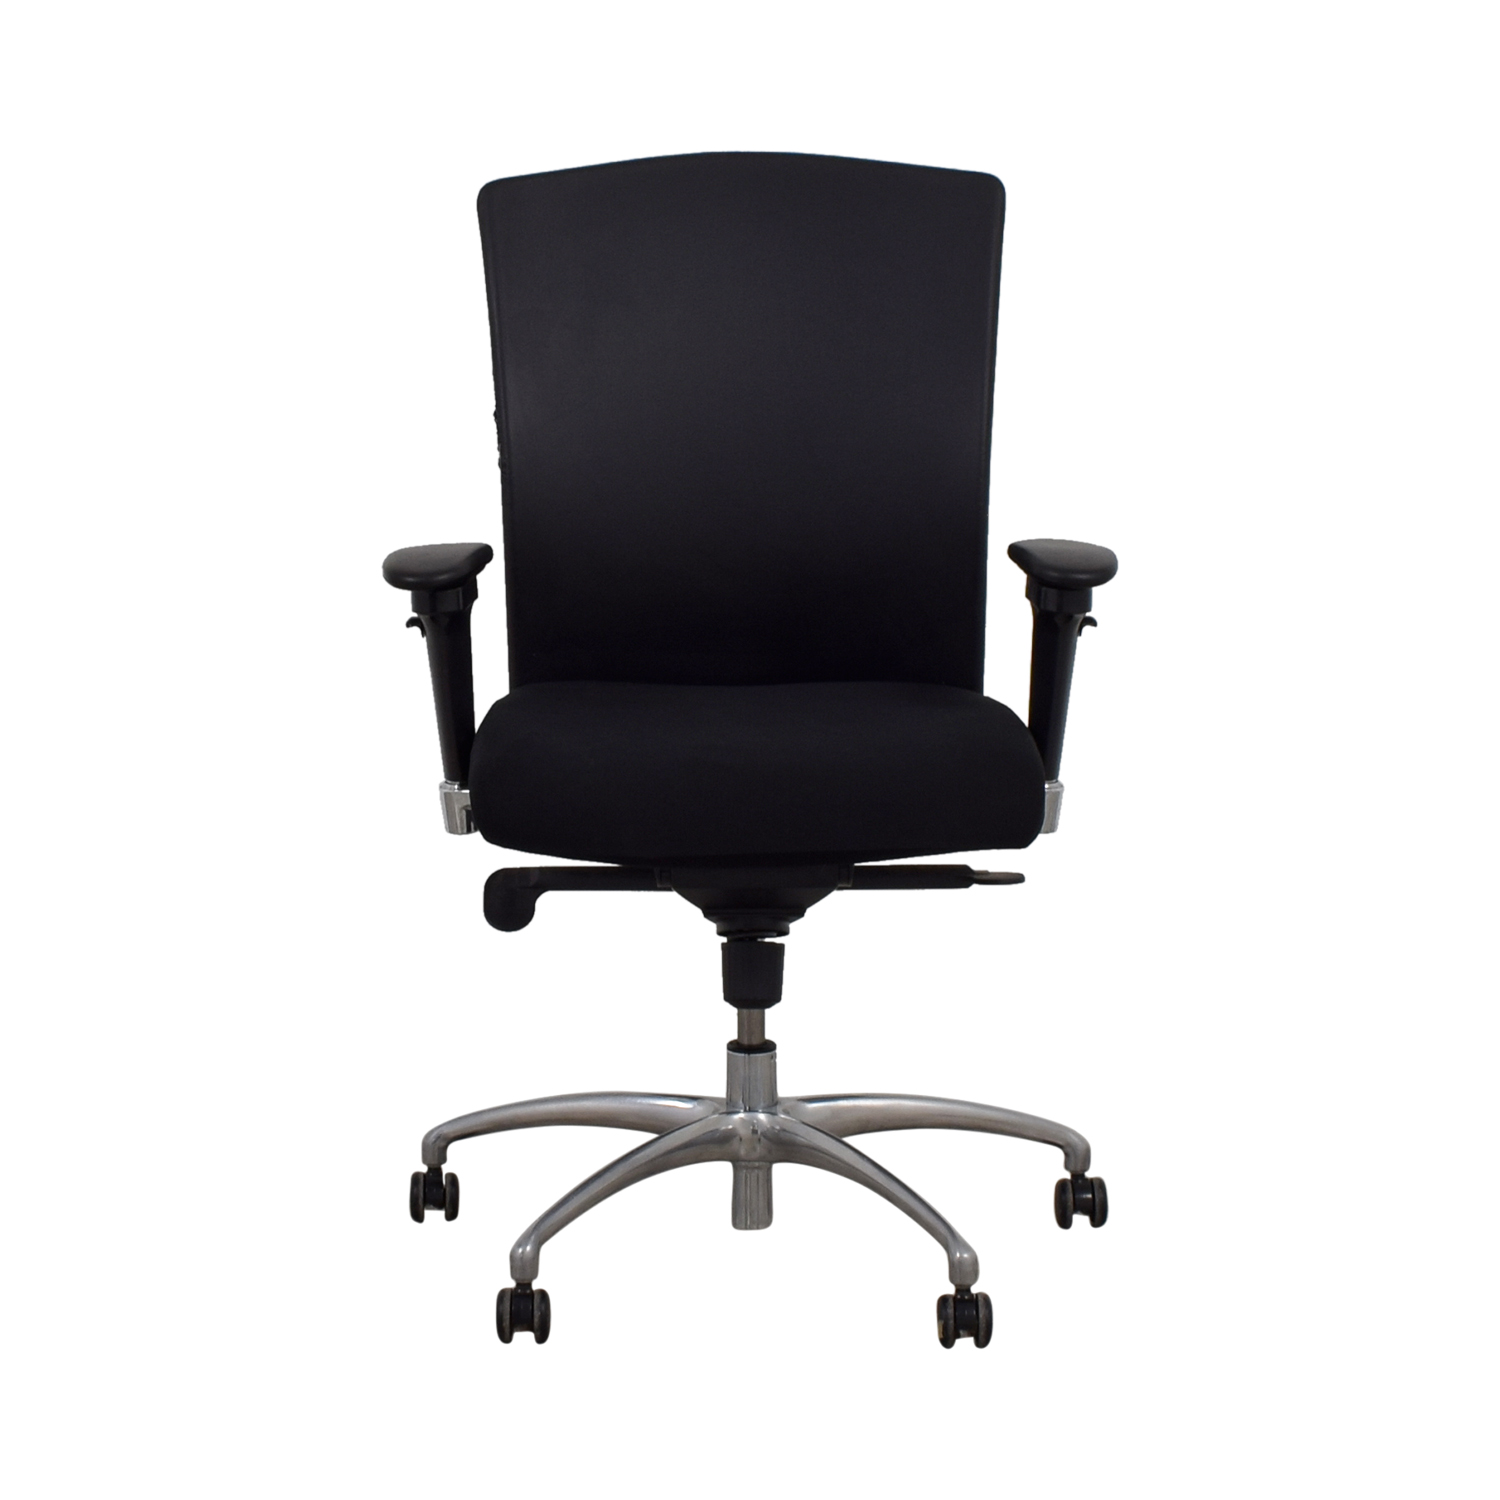 Gunlocke Company Gunlocke Company Ergonomic Black Office Chair discount